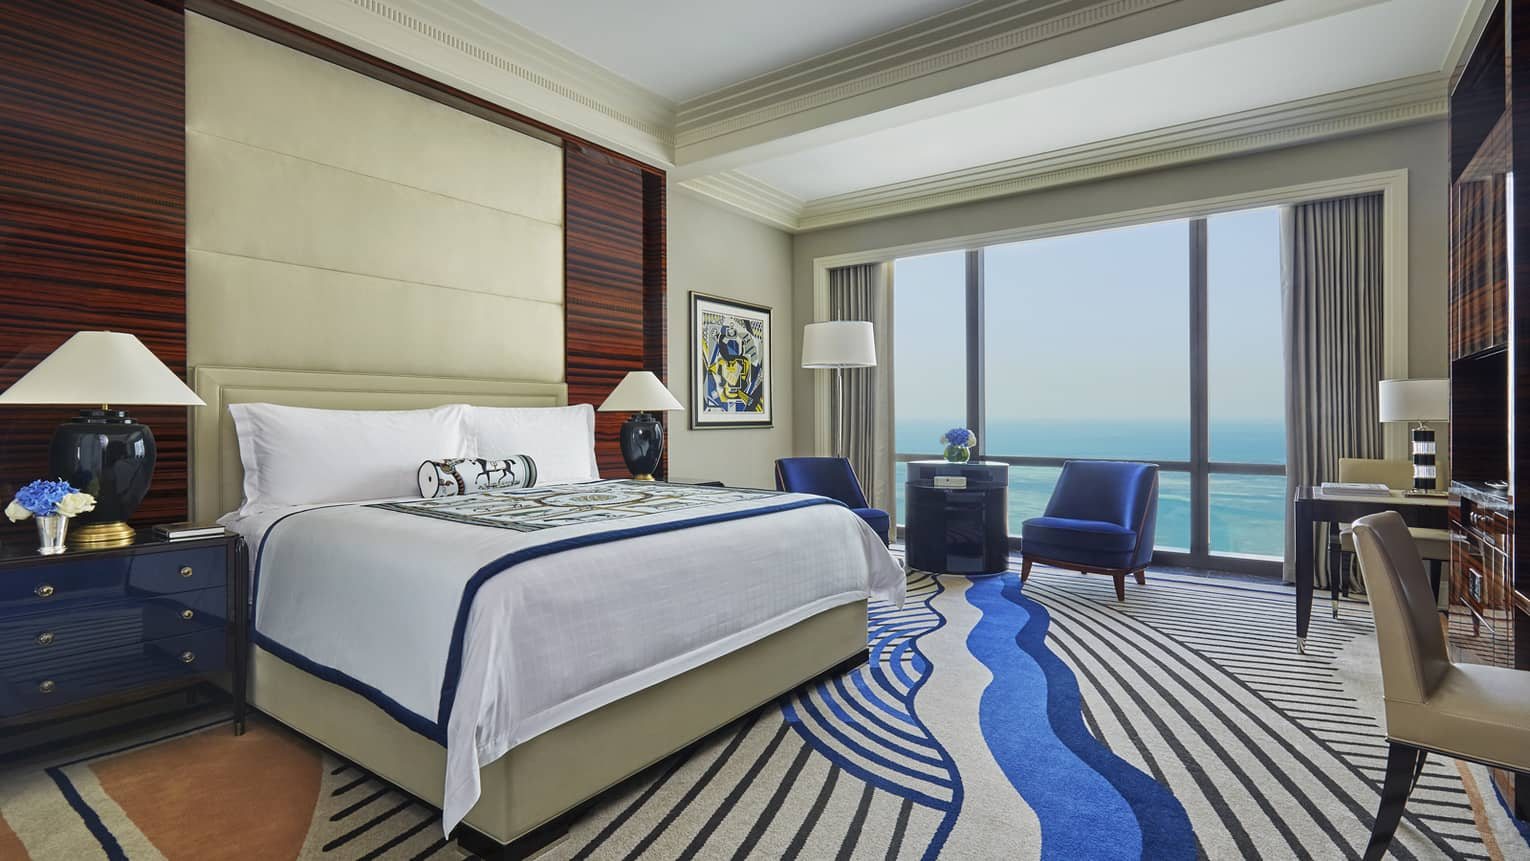 Premier Room bed with tall padded headboard, modern carpet with blue swirl design, floor-to-ceiling window with Arabian Gulf view